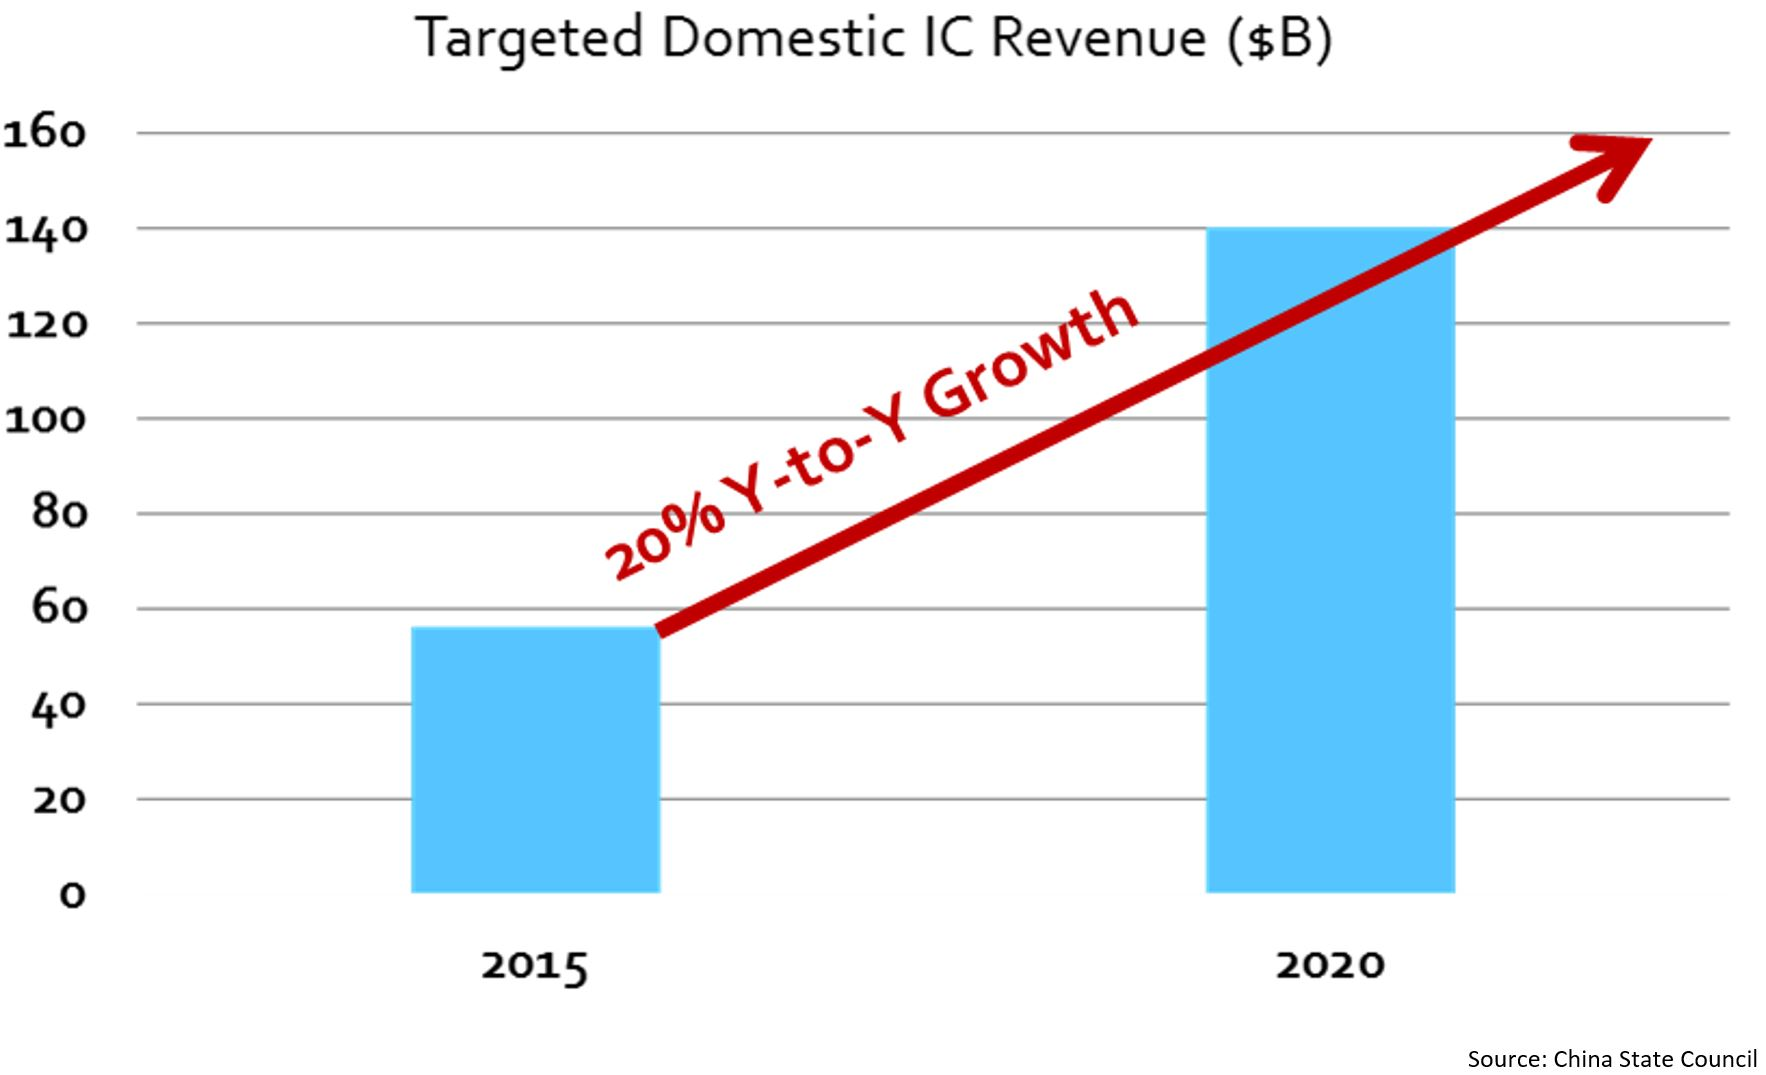 EDA Consortium Illustration #1_Target IC Revenue Growth Chart